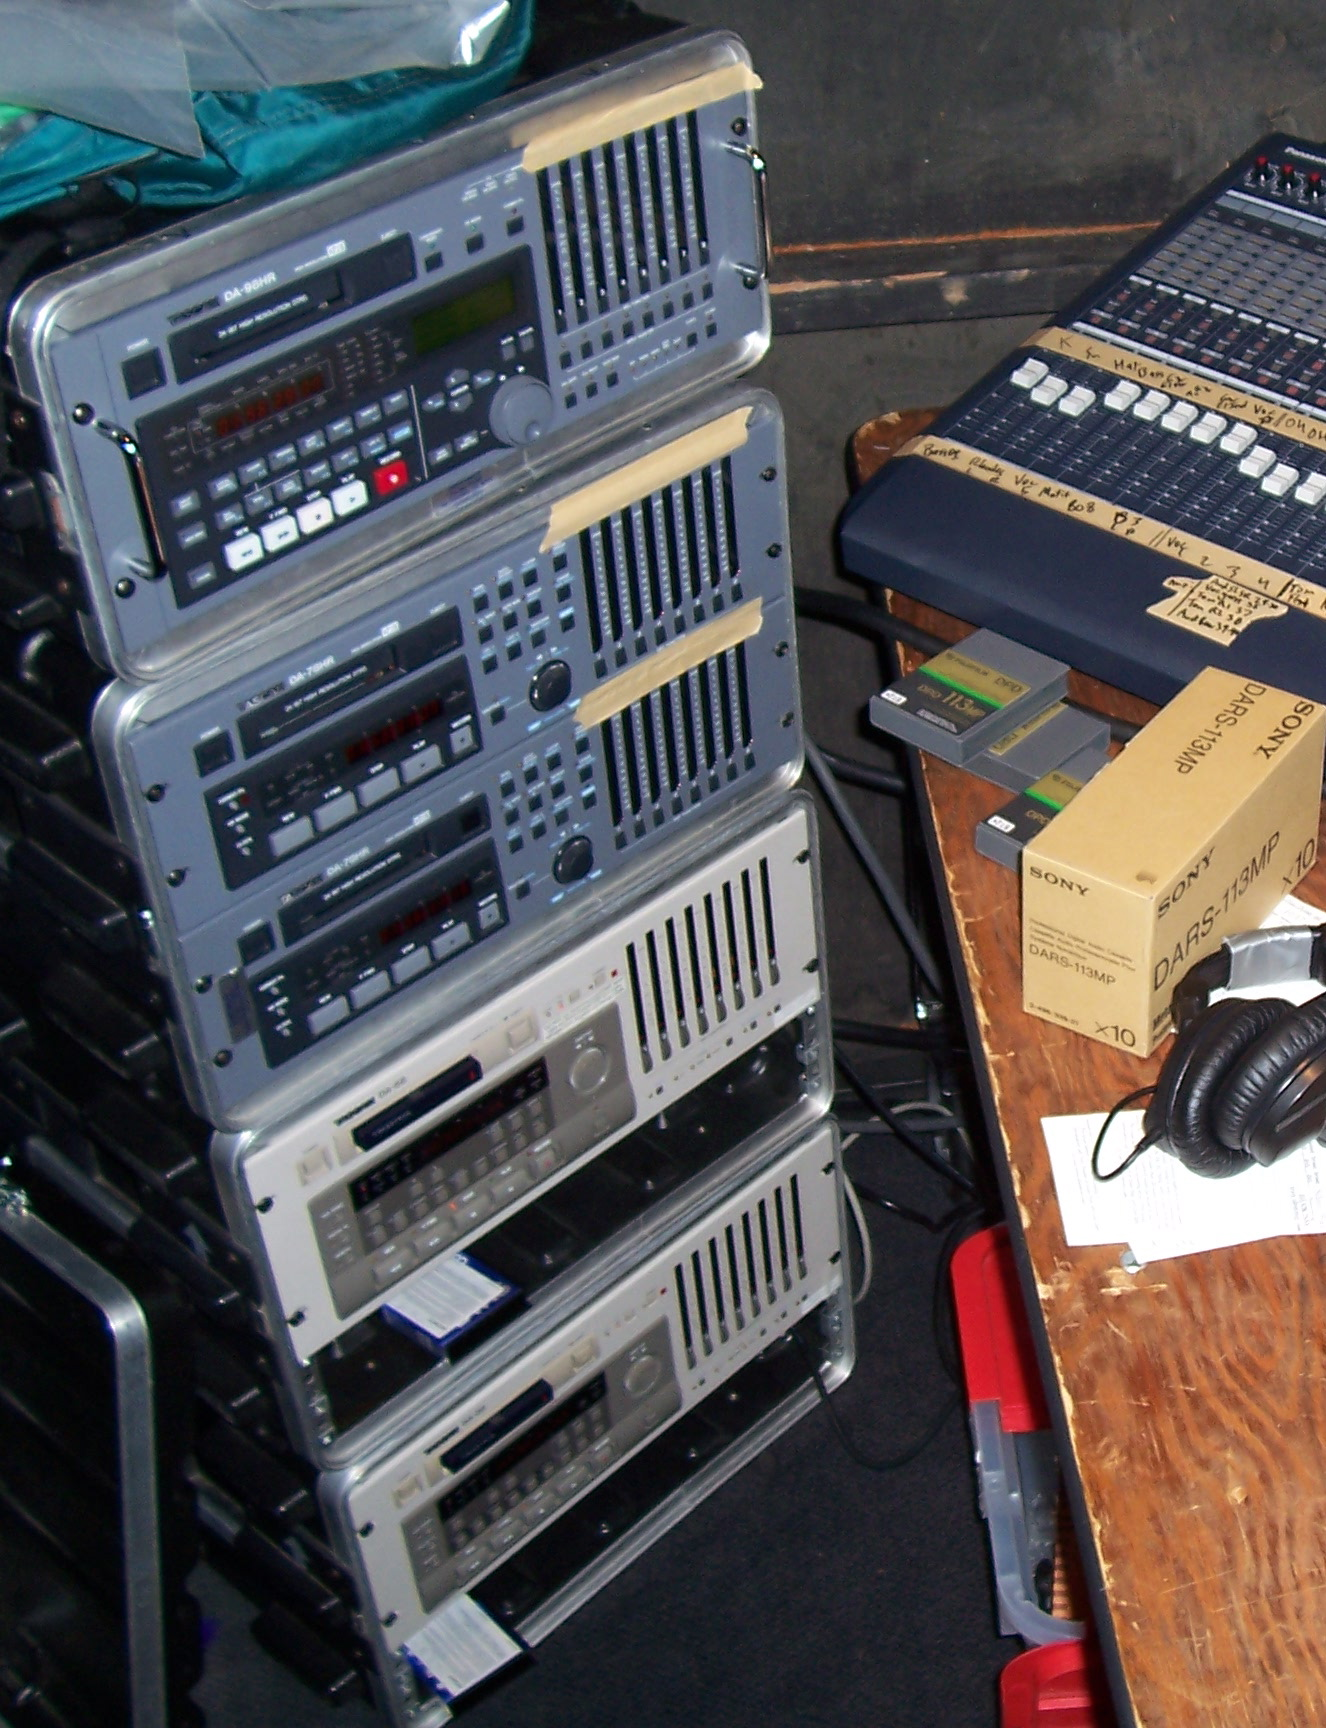 A 40 track DTRS system: DA-98HR, DA-78HR, DA-78HR, DA-88, and DA-88, with tapes